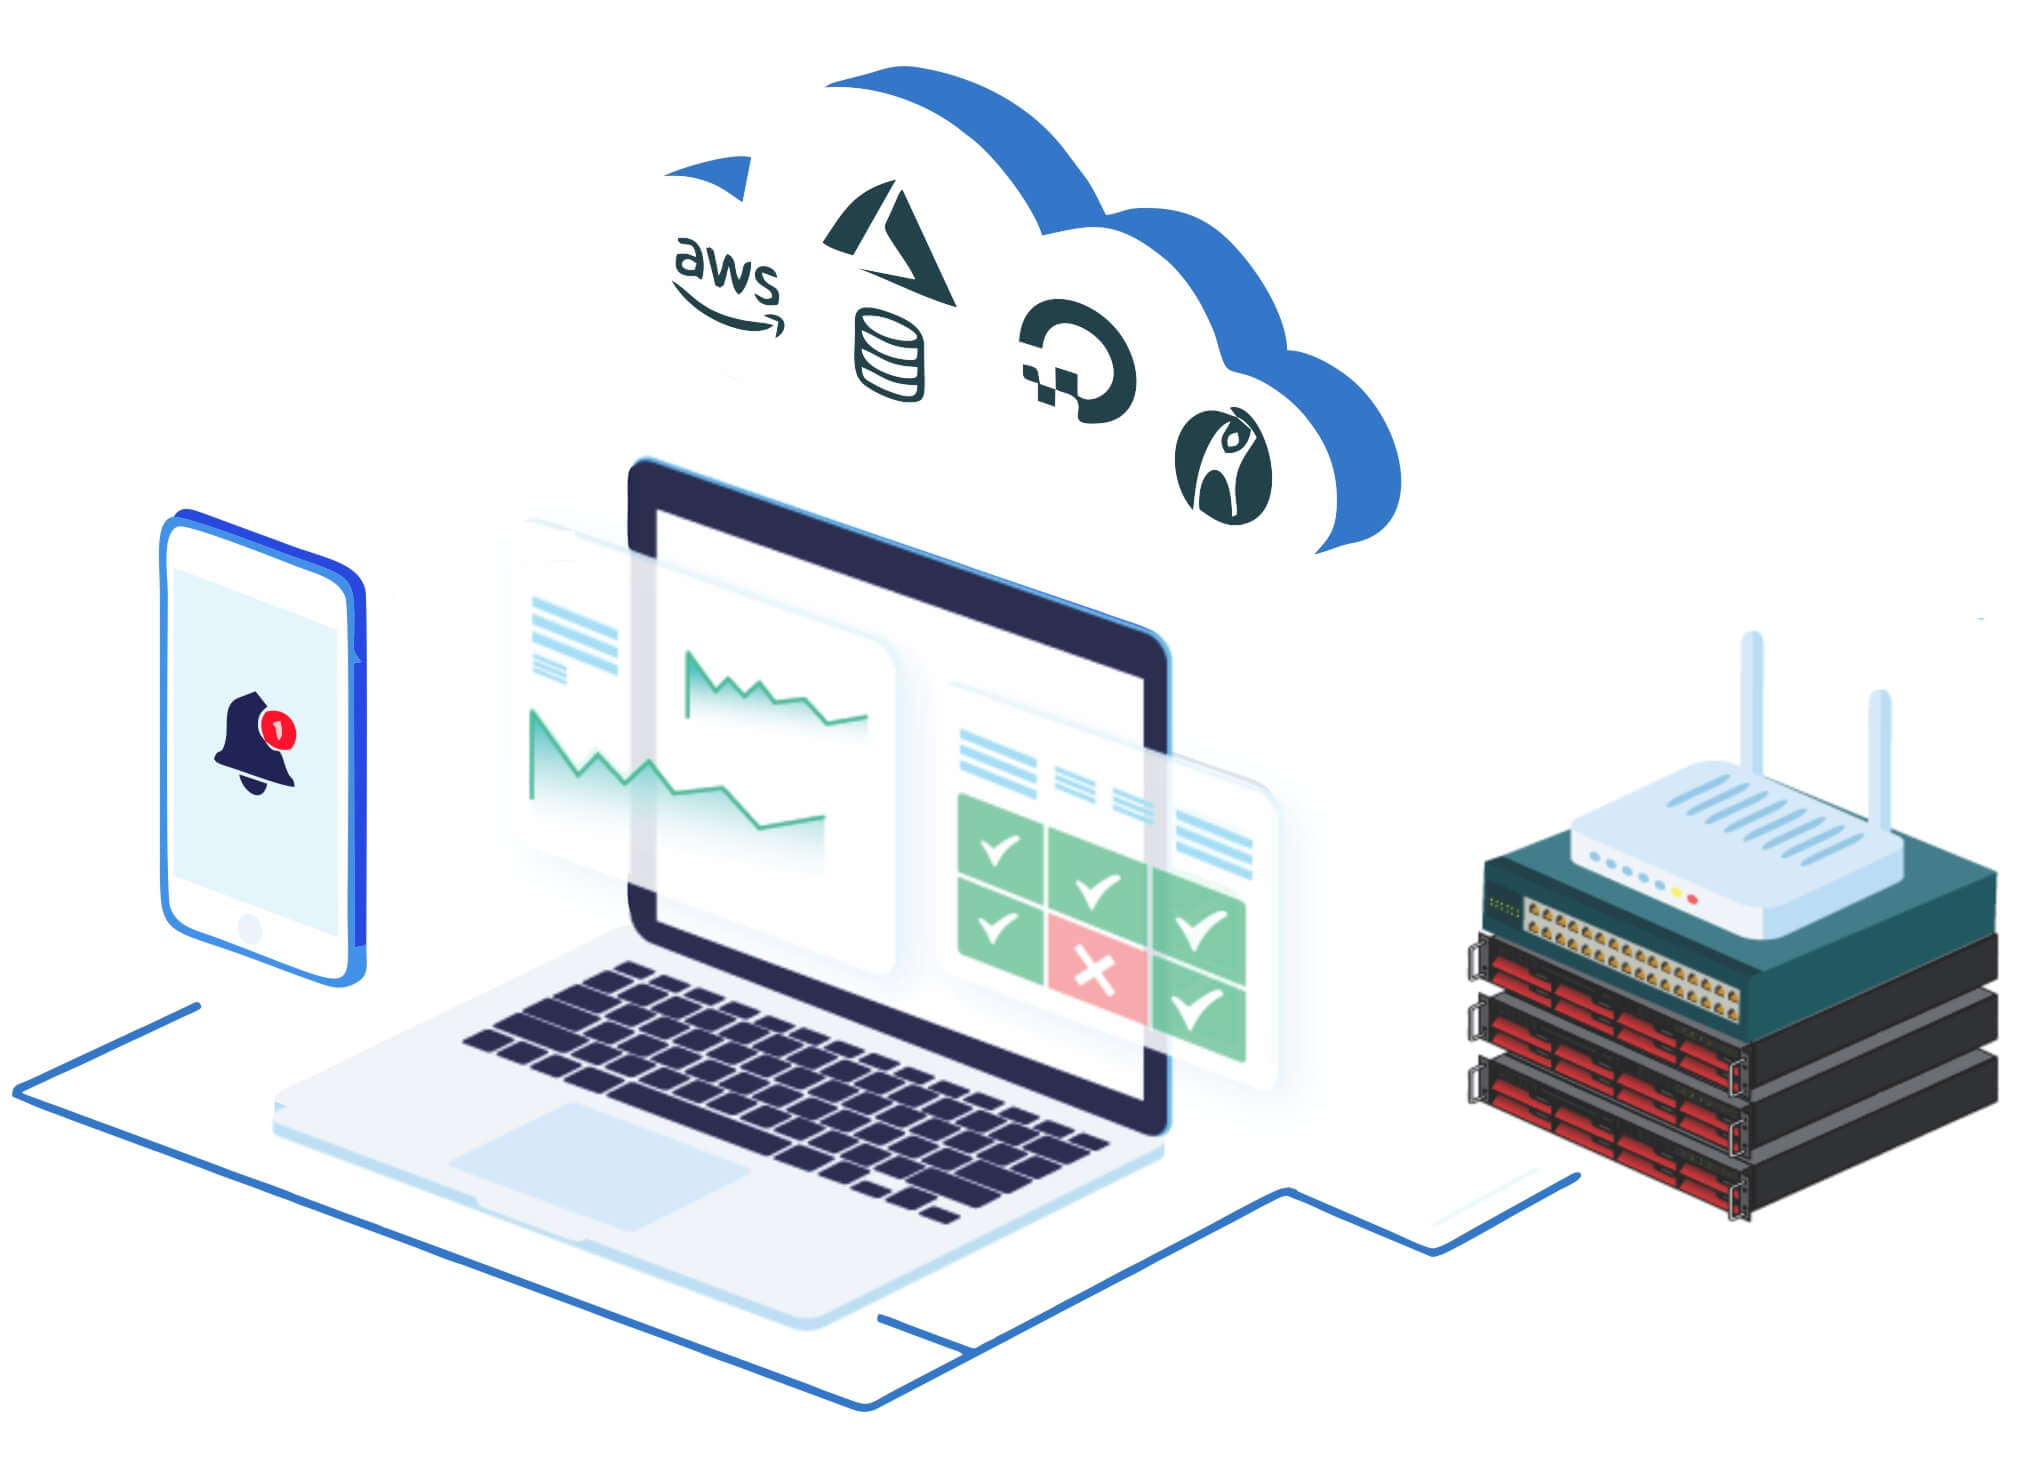 CloudRadar Monitoring Software for servers, networks and websites